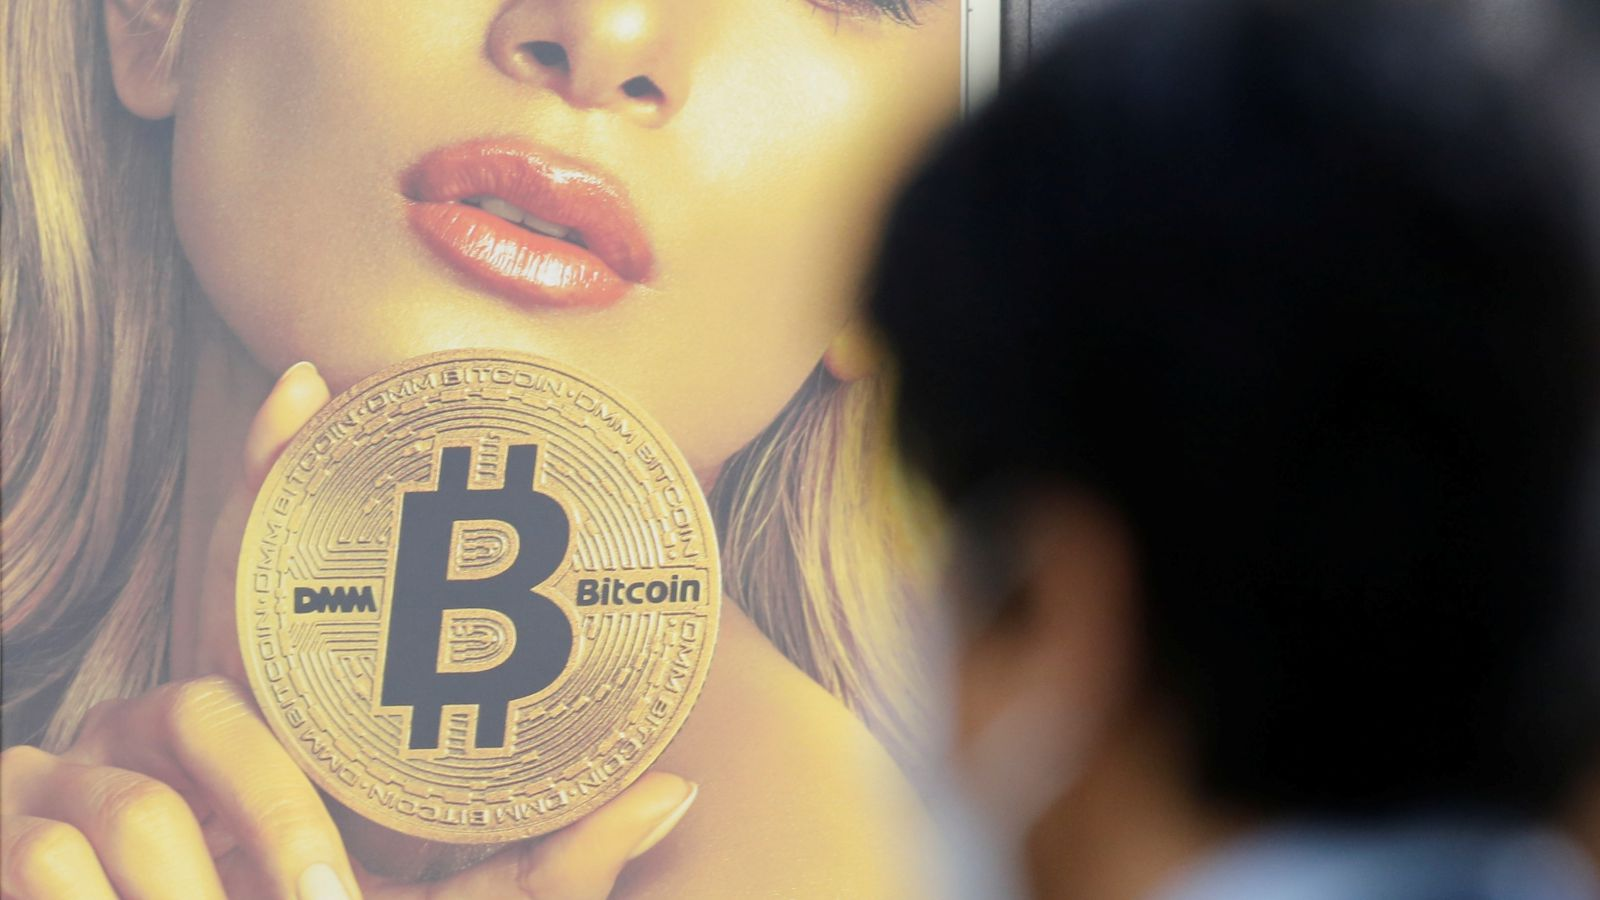 India's bitcoin boom is fueling a surge in cryptocurrency crime